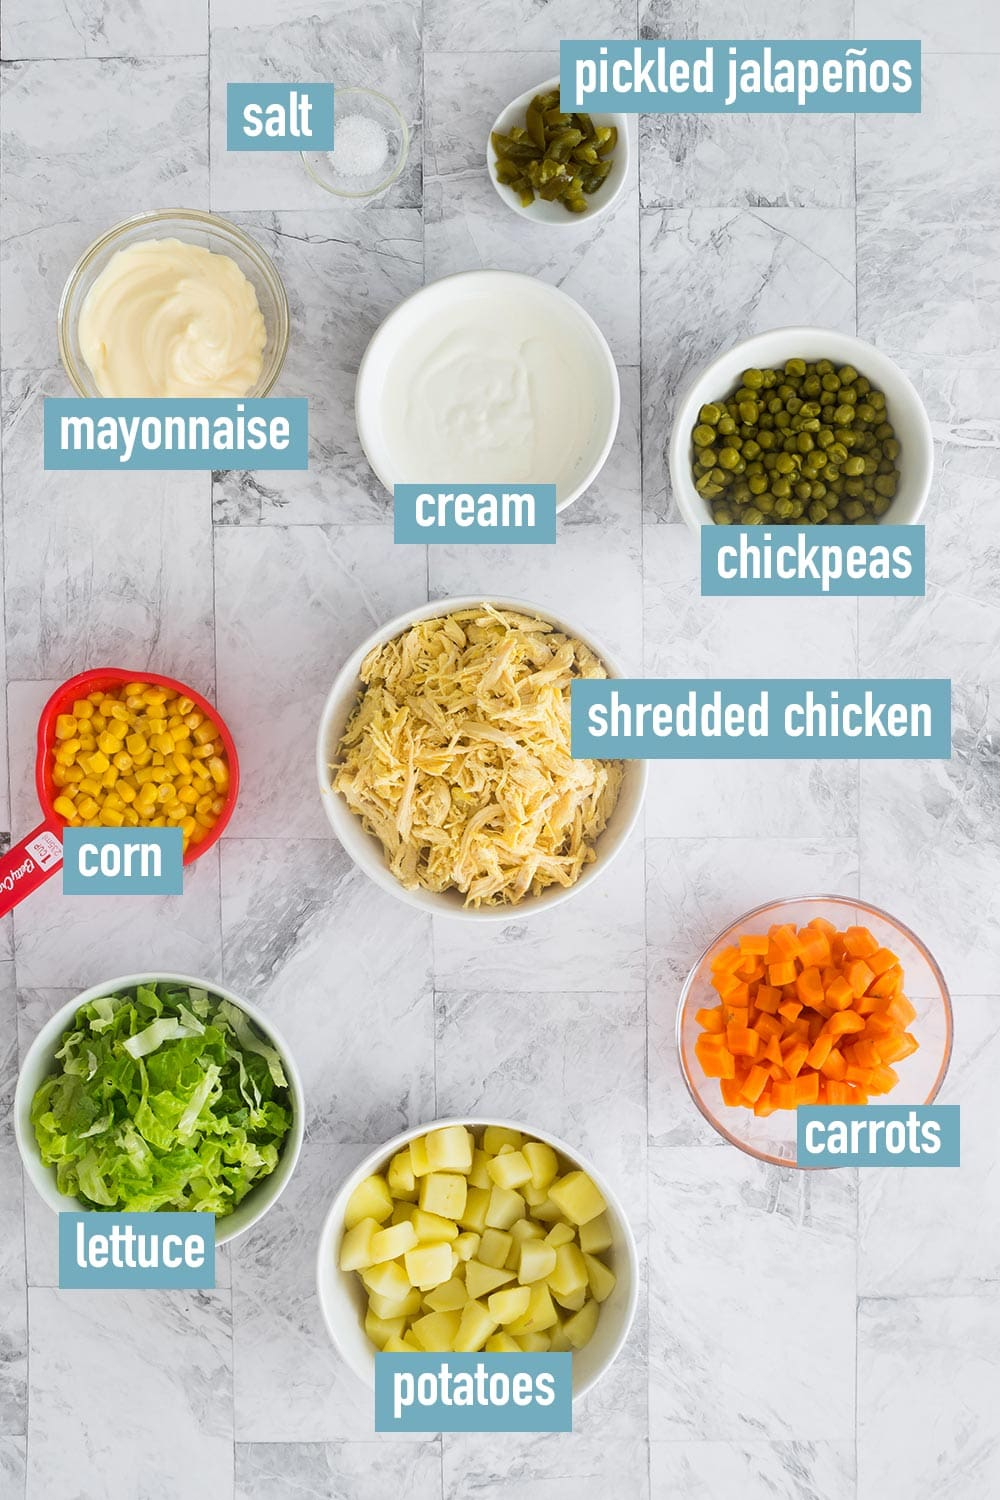 The ingredients labeled and displayed on a countertop.